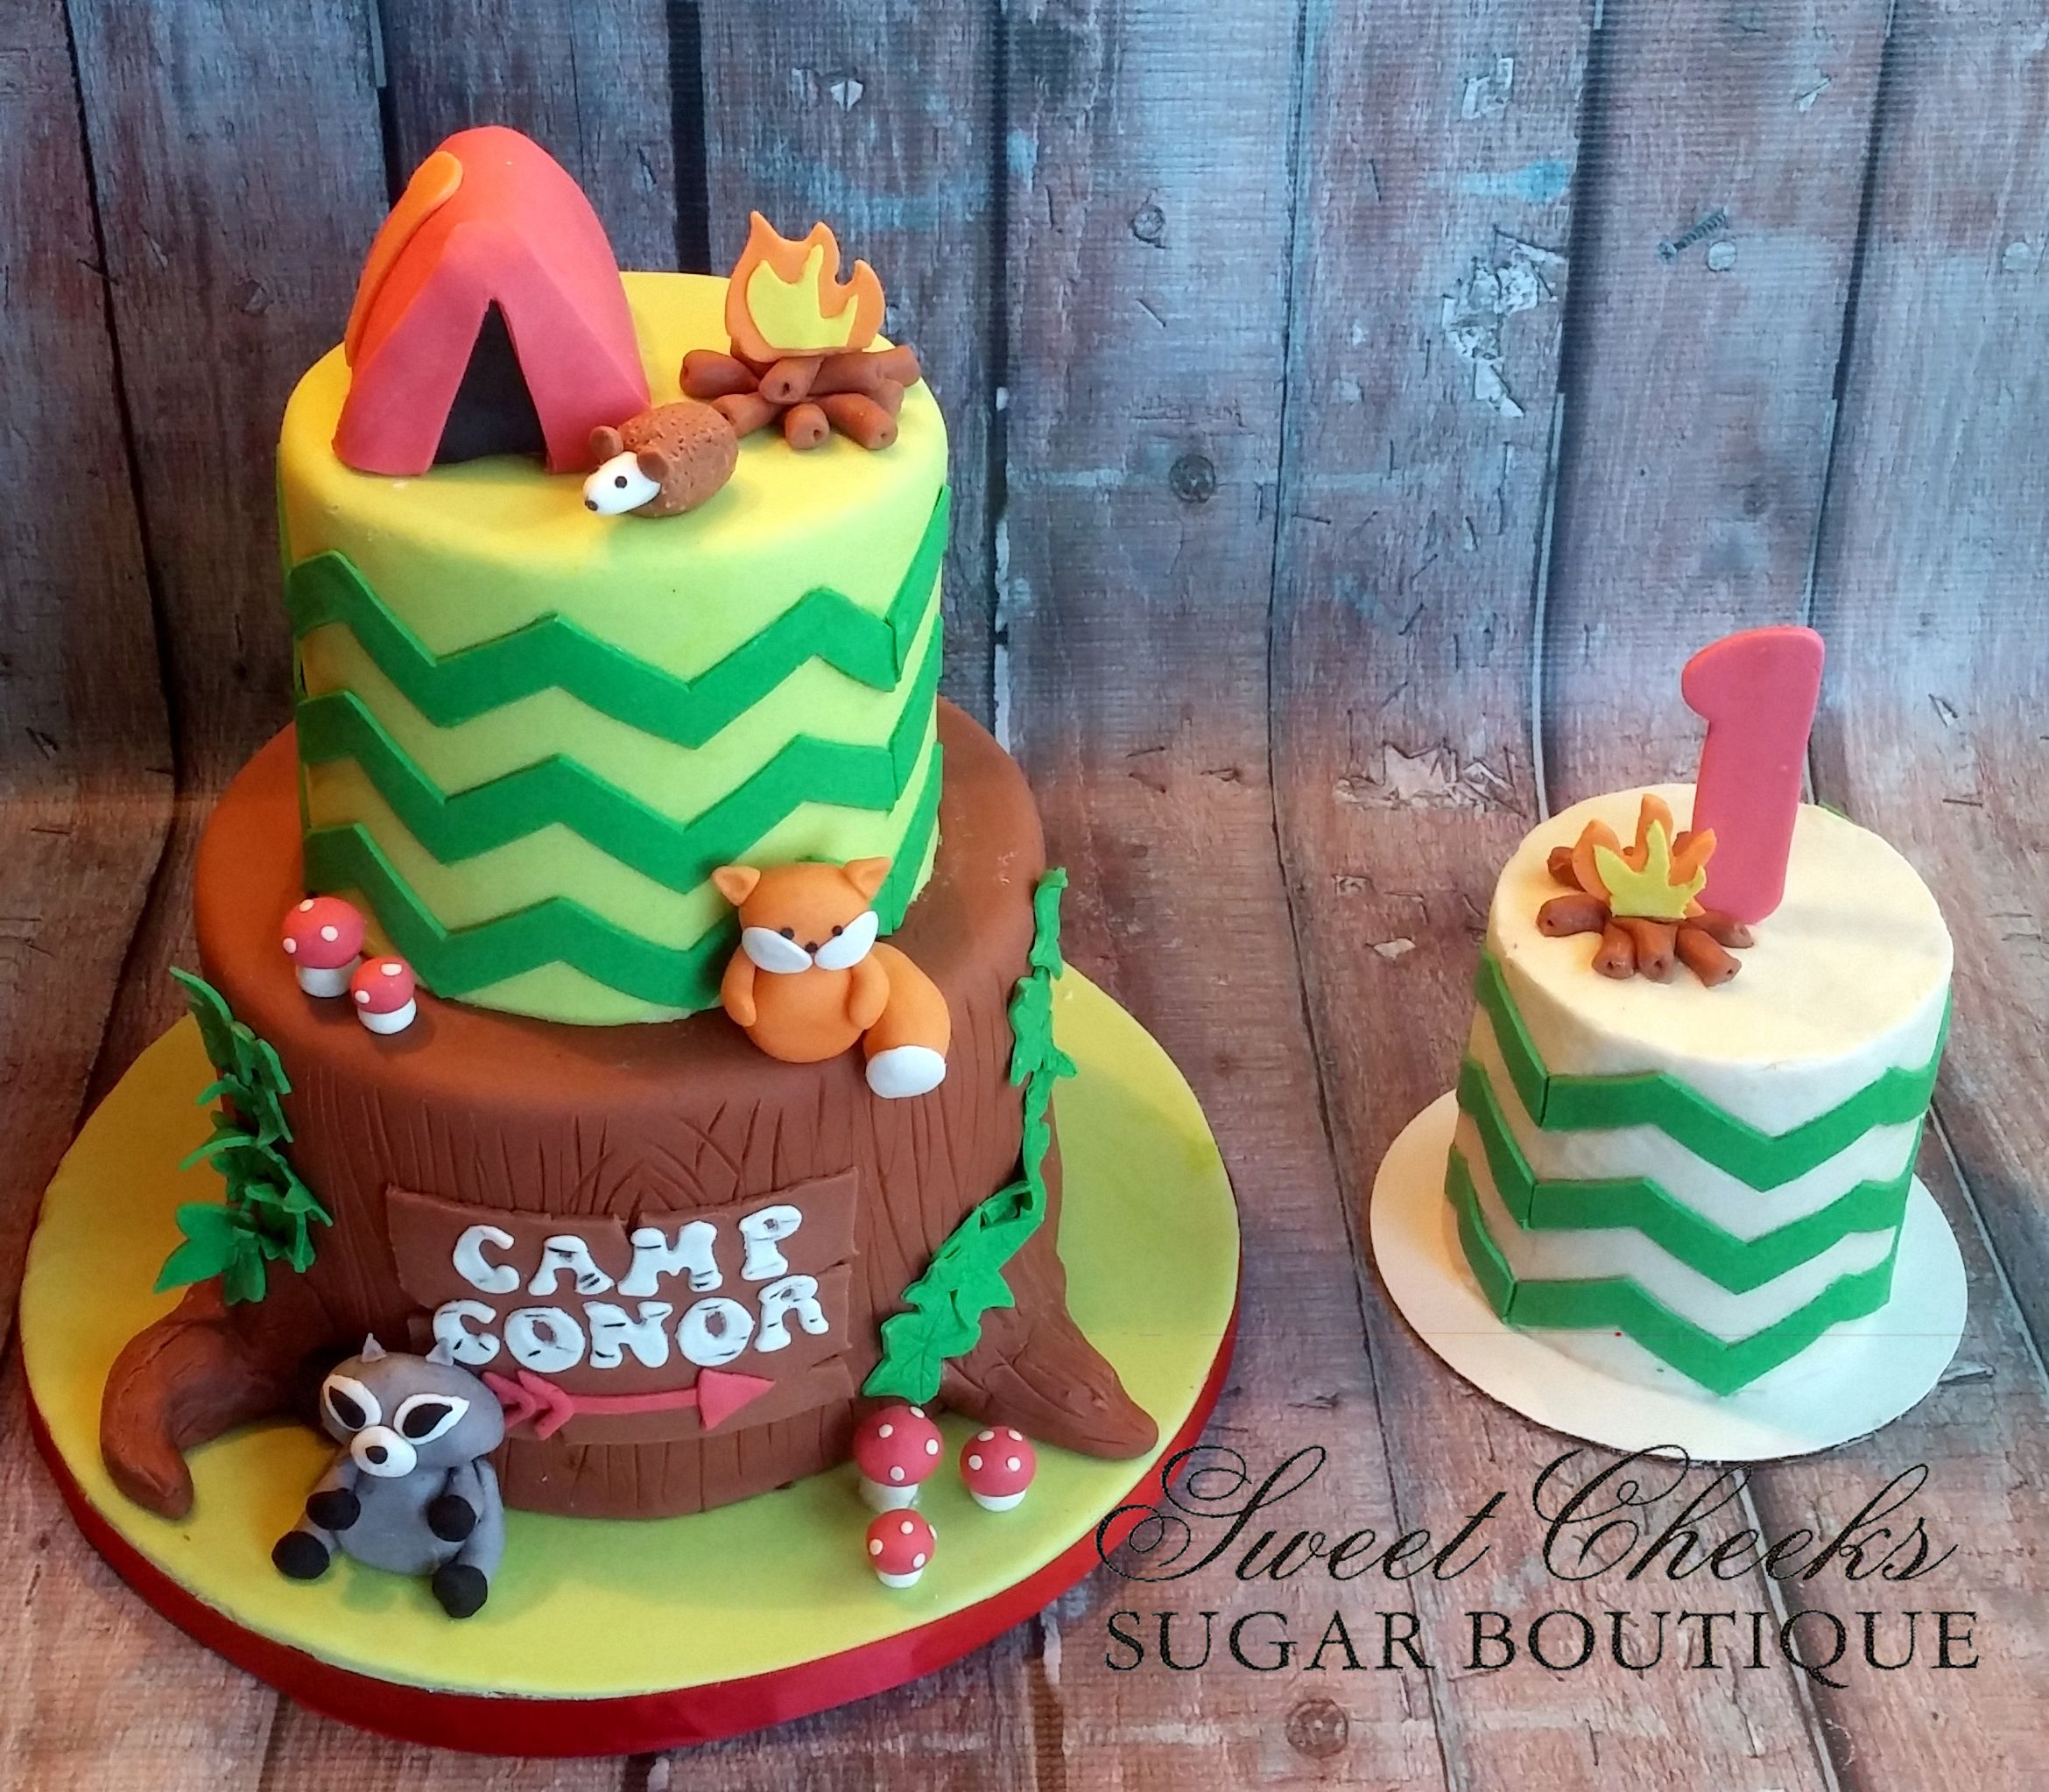 A Camping Themed First Birthday Cake And Smash Cake For Conor! Happy Birthday!!